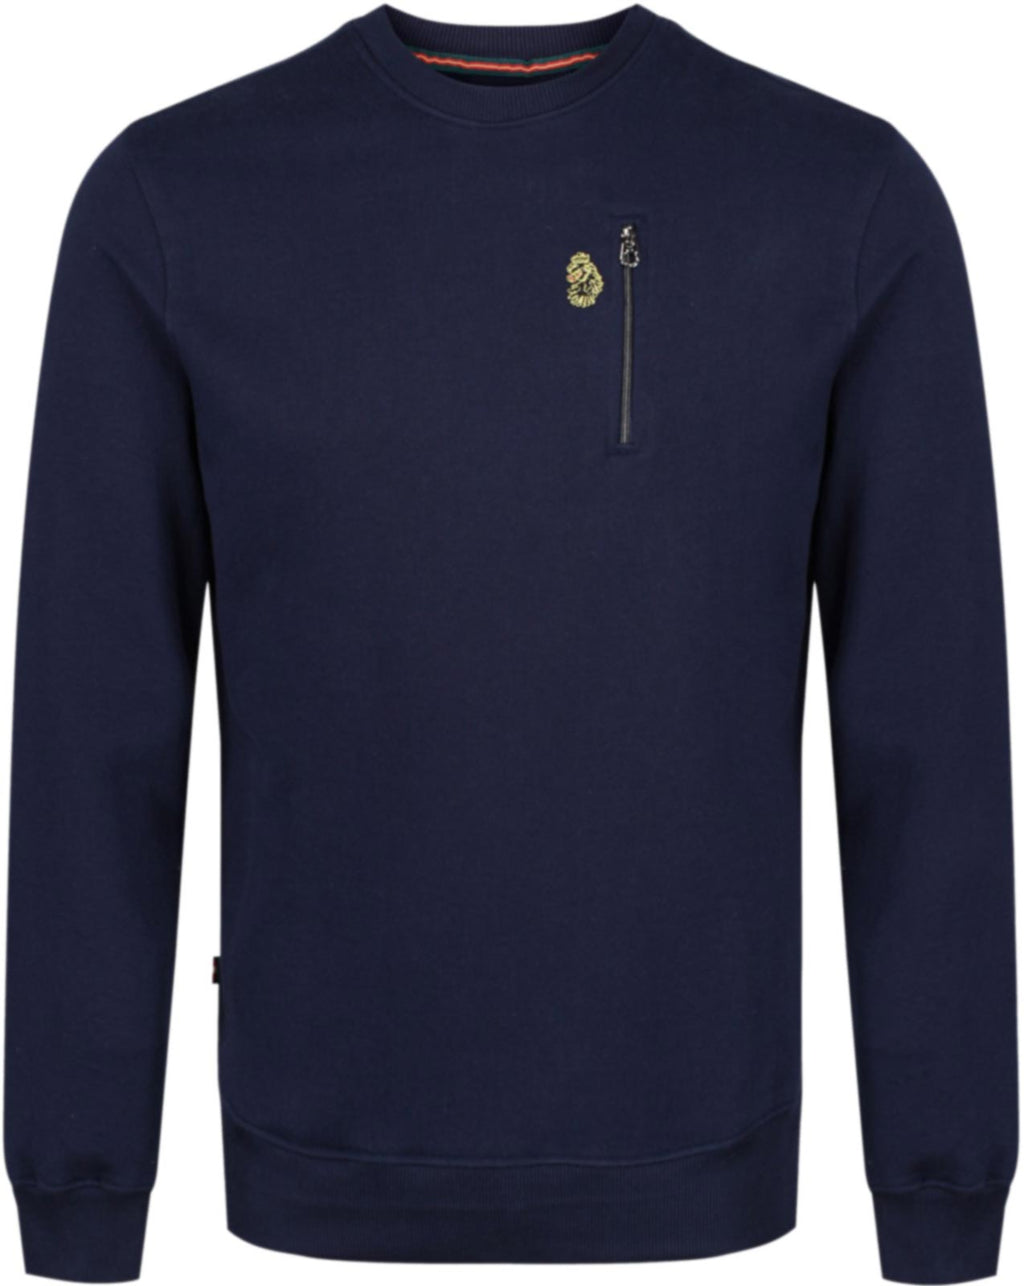 Luke 1977 Paris 2 Sweatshirt Navy